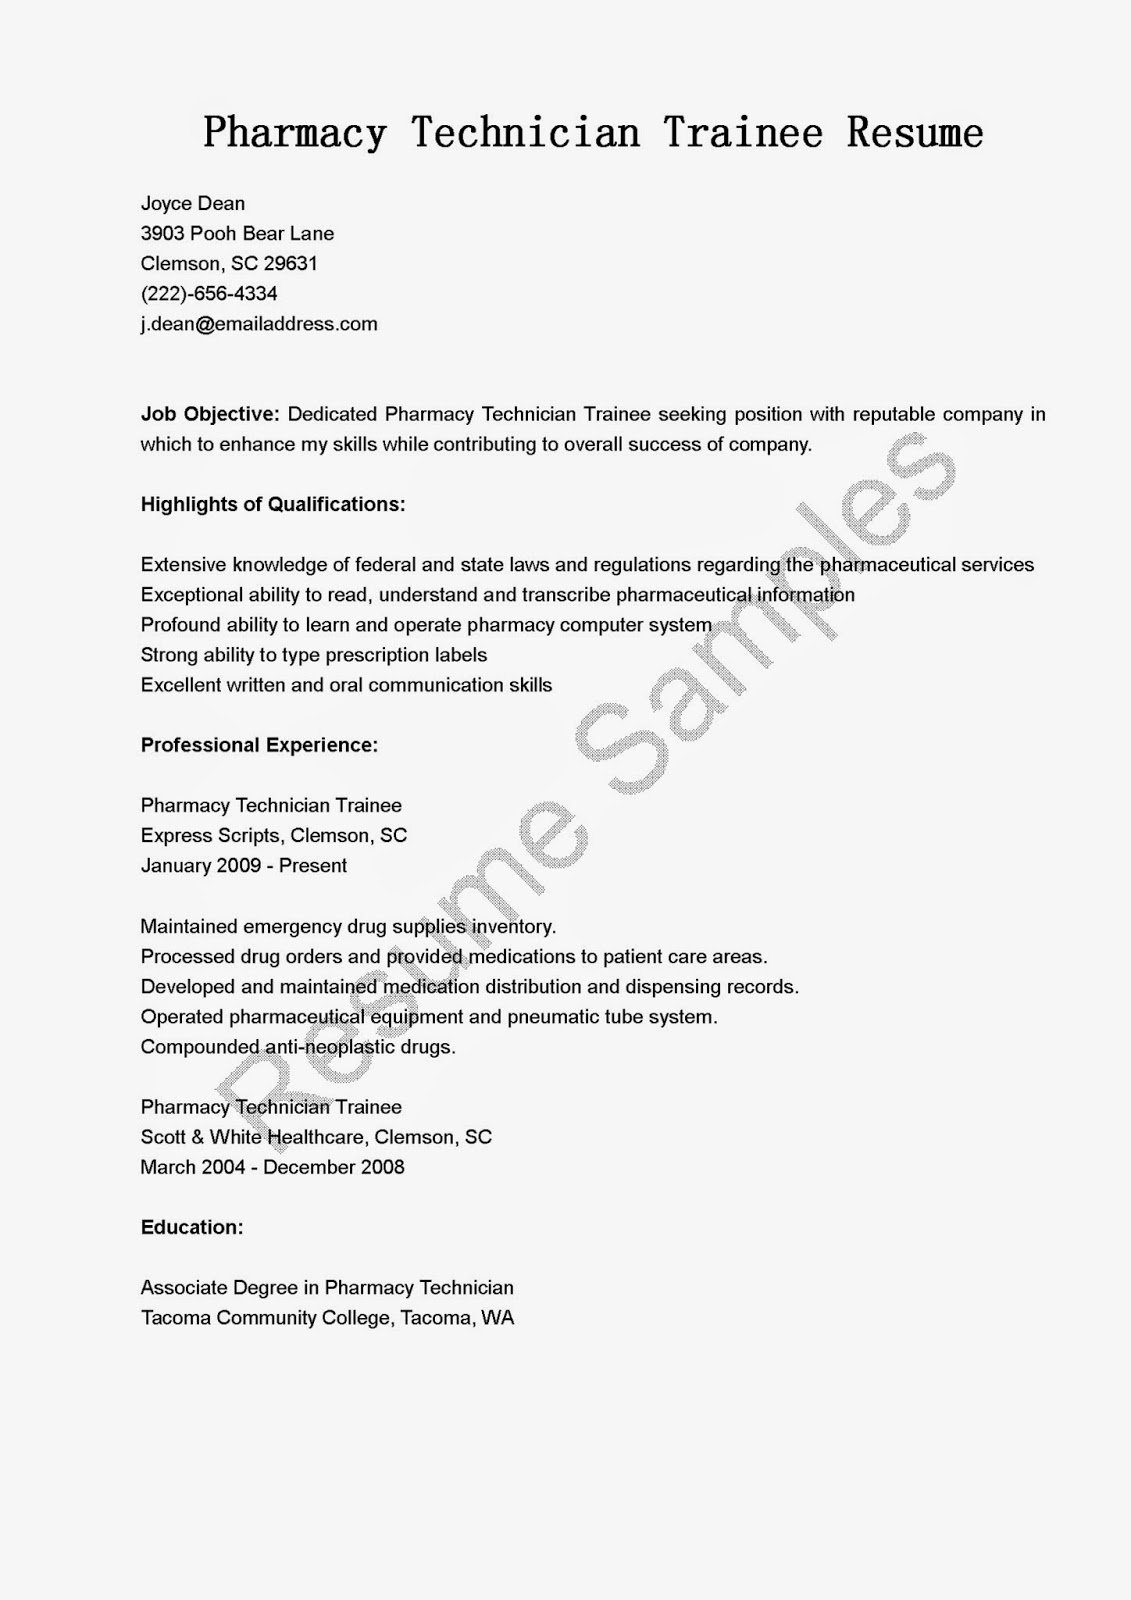 cover letter sample uscis sample cover letter i joint petition to remove cover letter sample blogger - Hospitalist Cover Letter